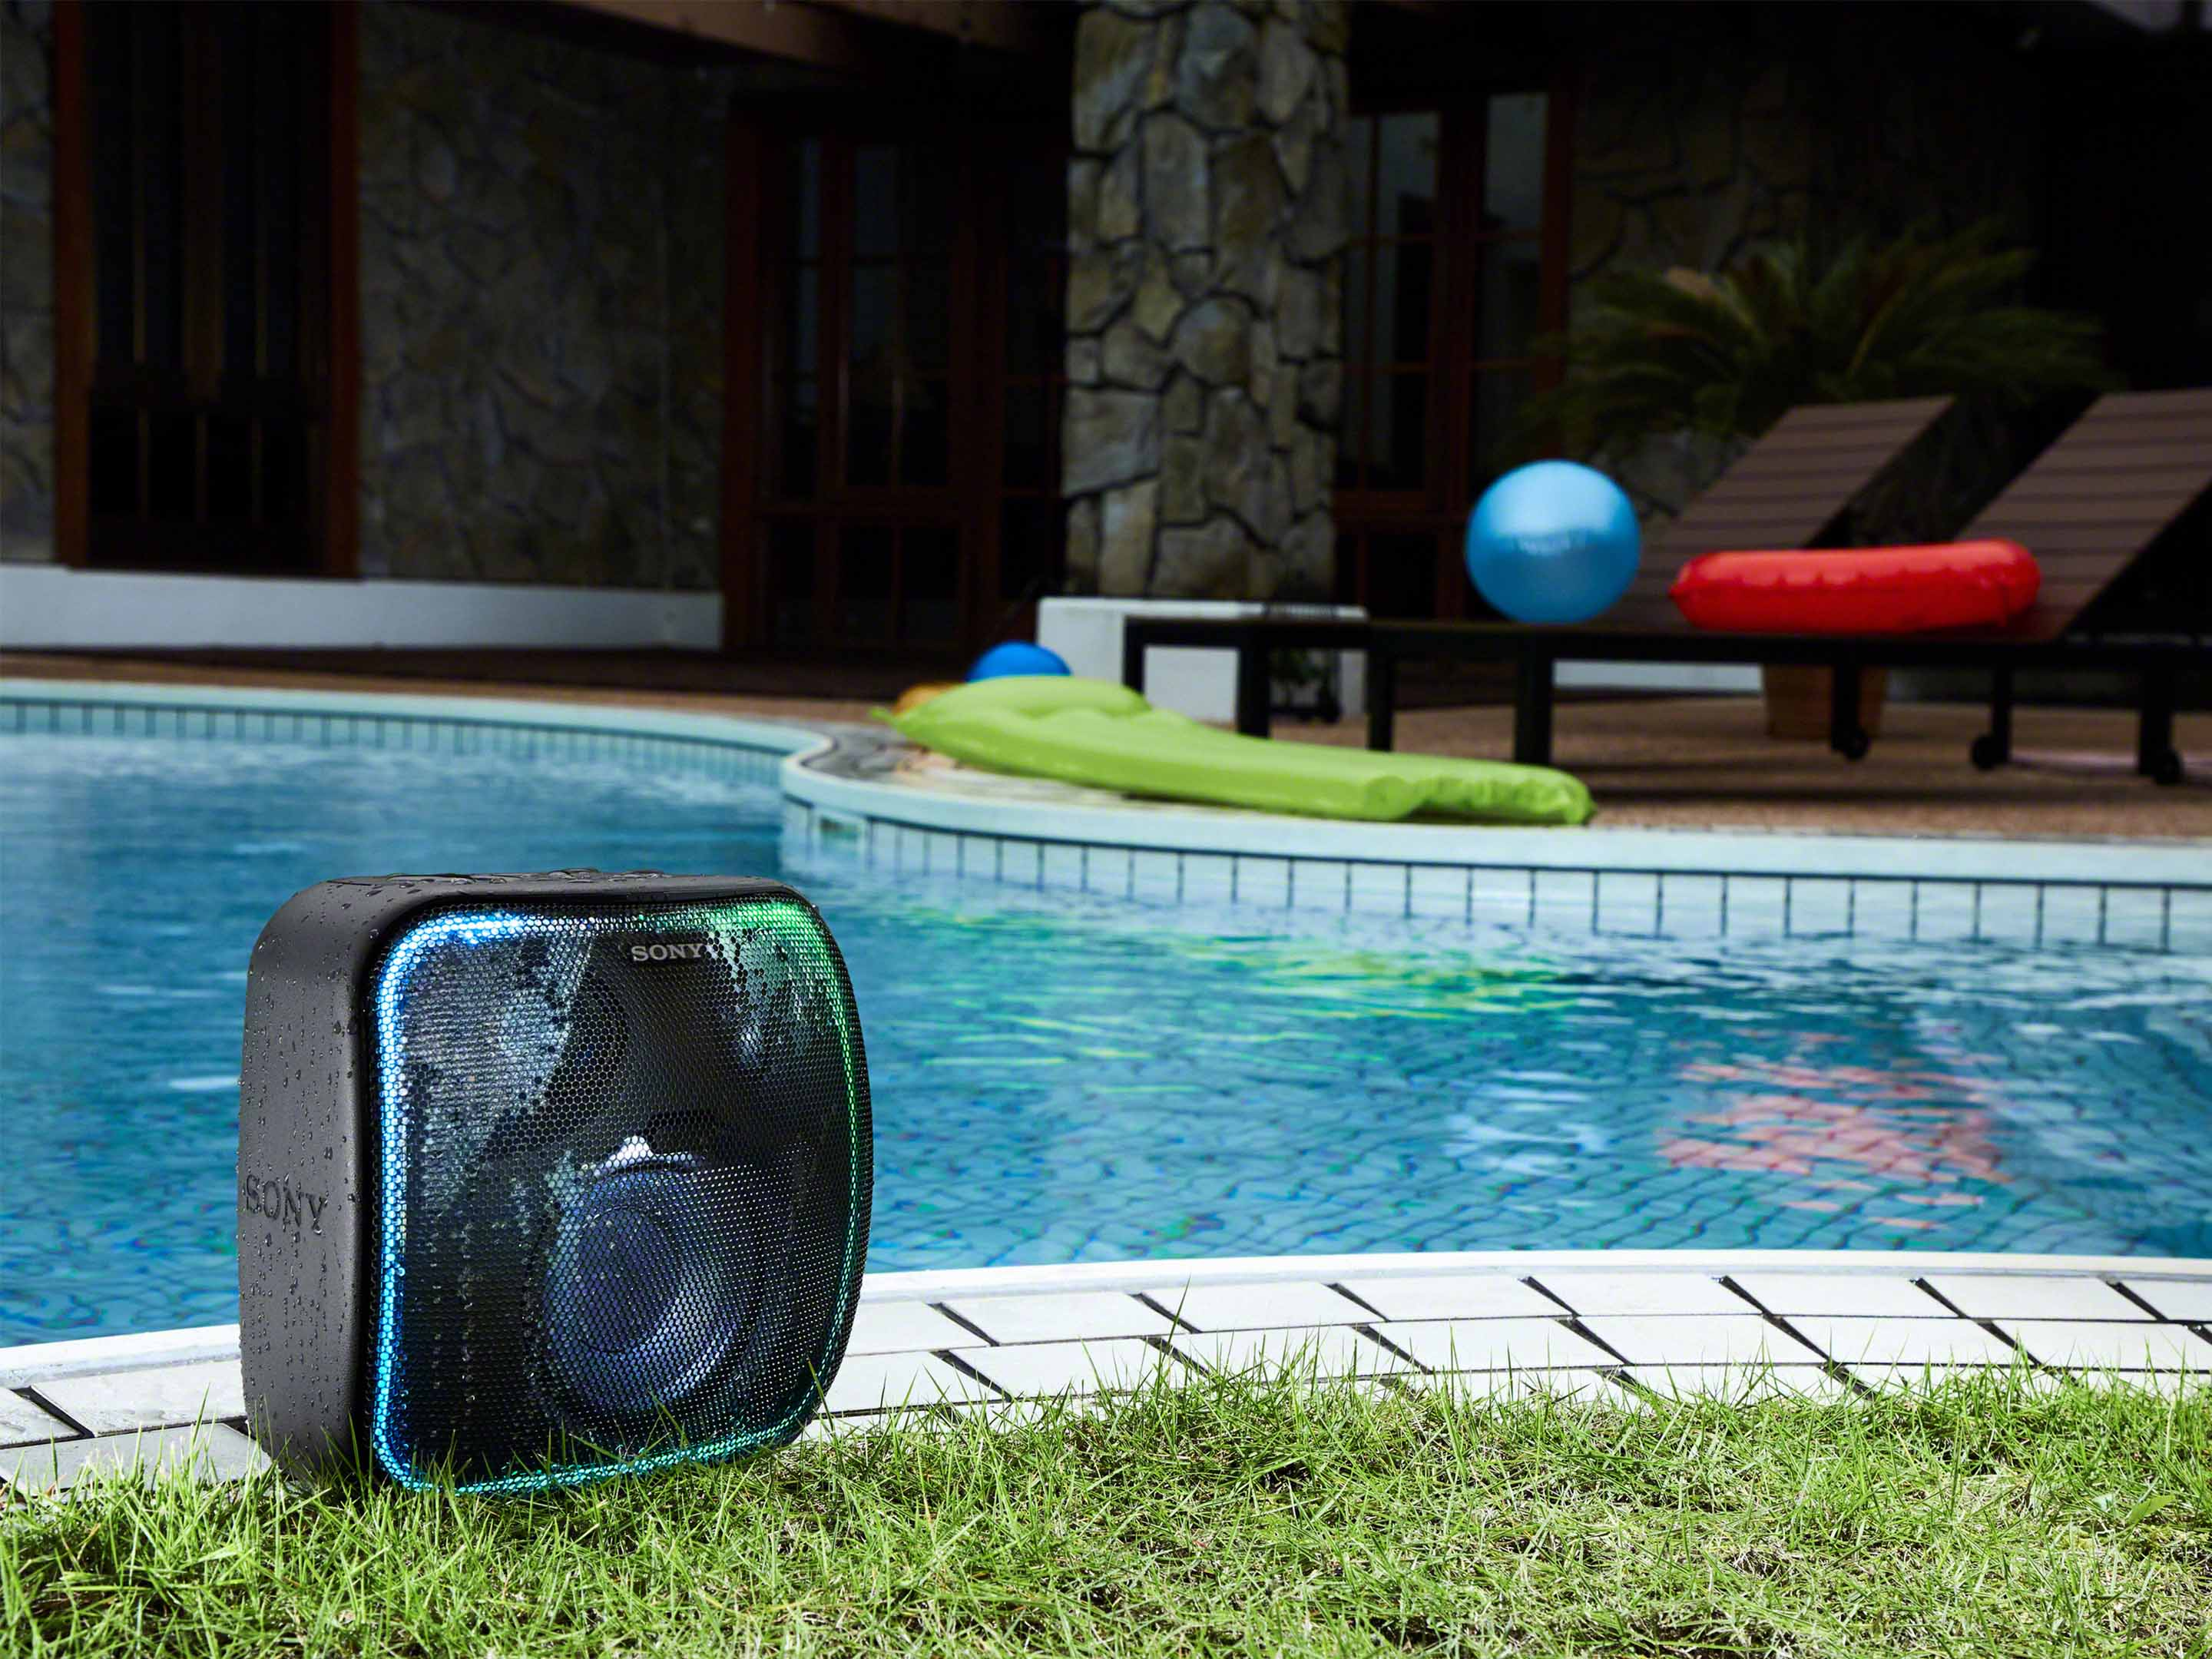 Sony XB01G Bluetooth speaker